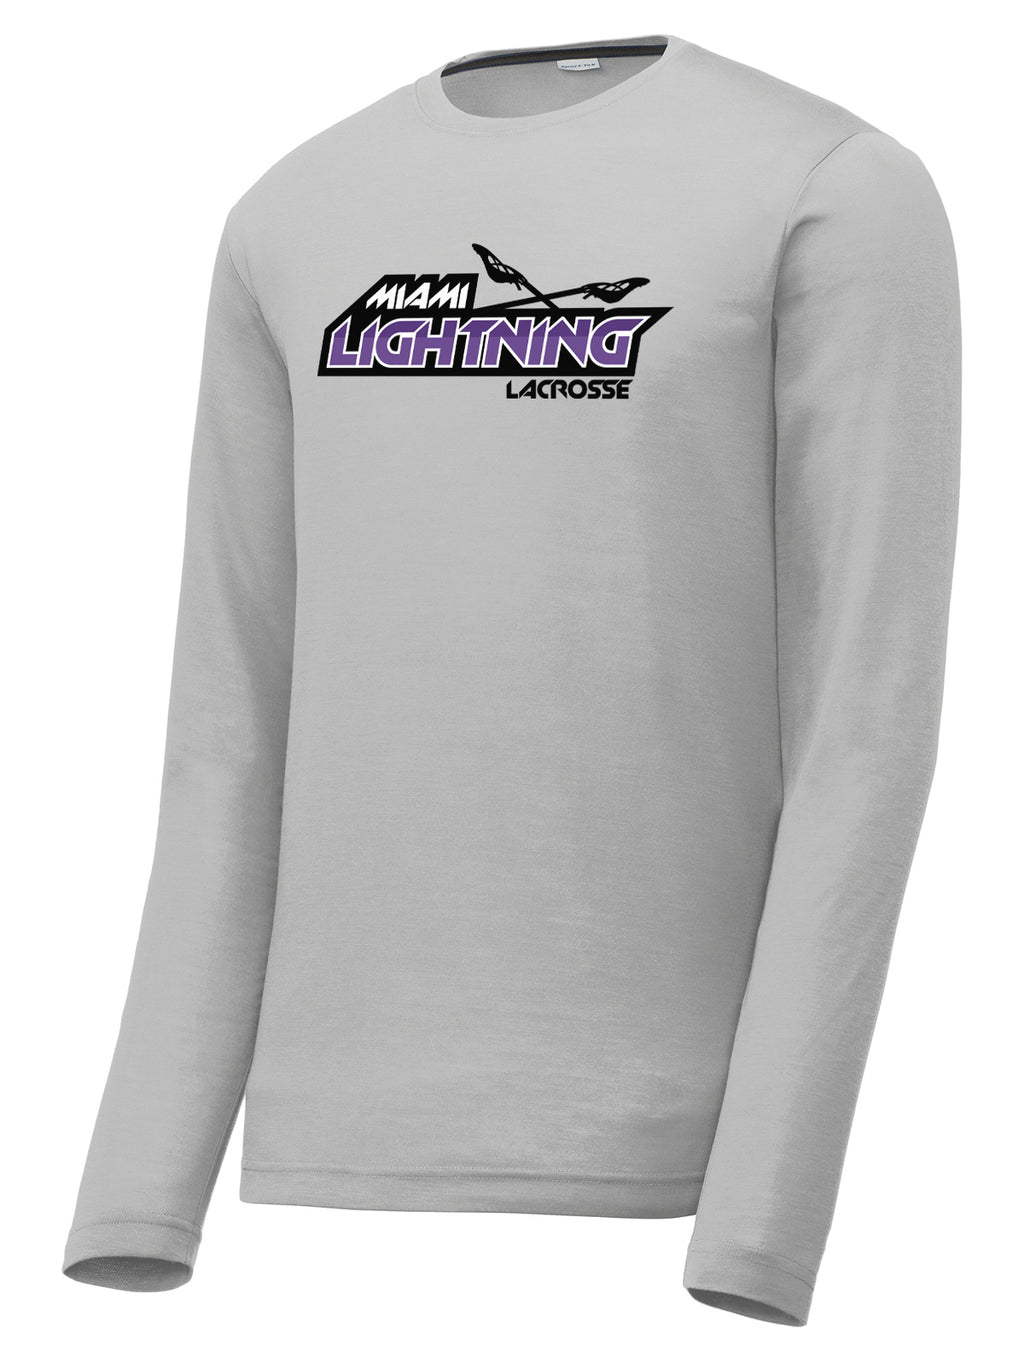 Miami Lightning Silver Long Sleeve CottonTouch Performance Shirt